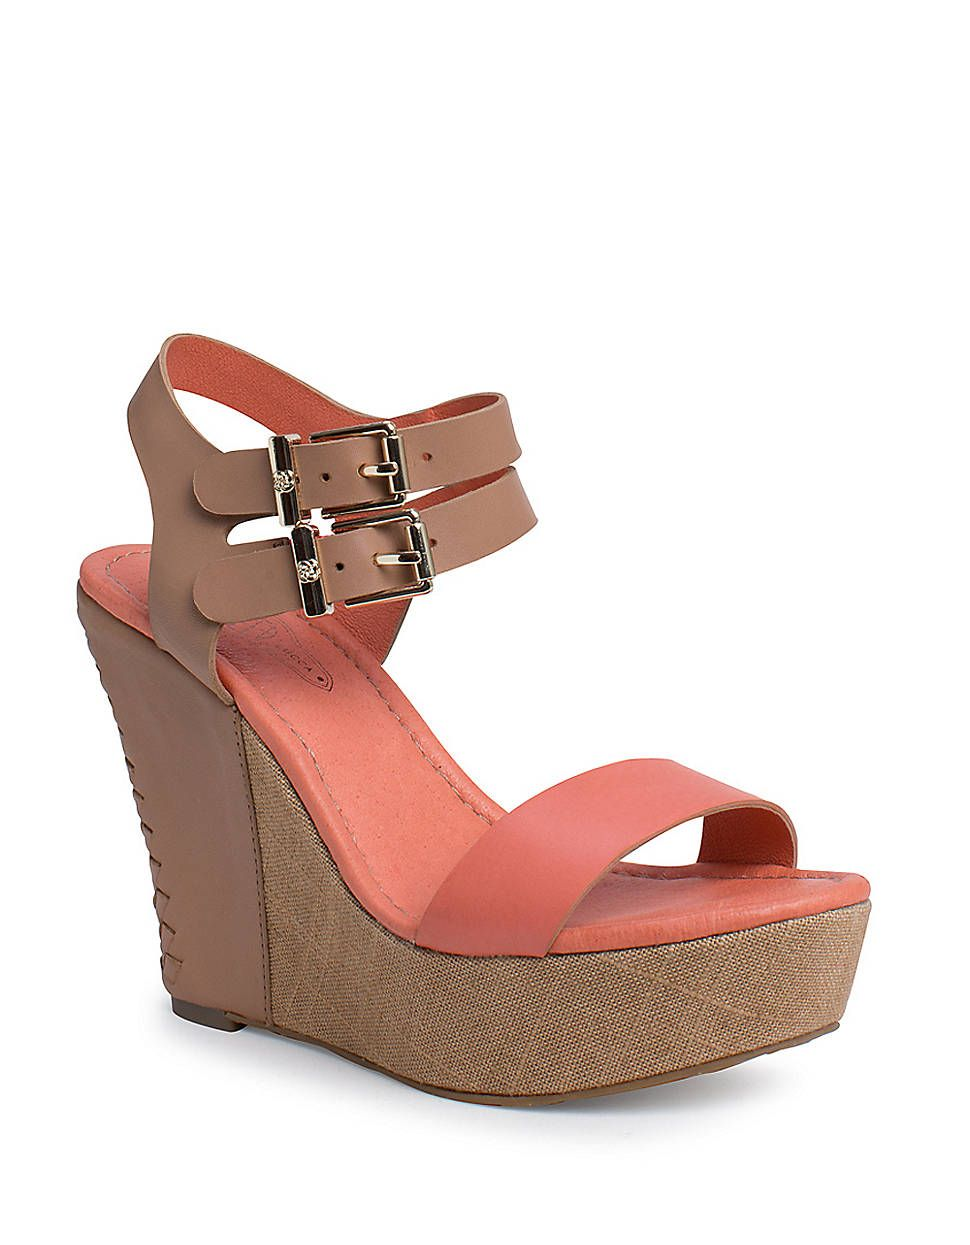 c9bc87950bf Giulia Double Ankle Strap Platform Wedge Sandals